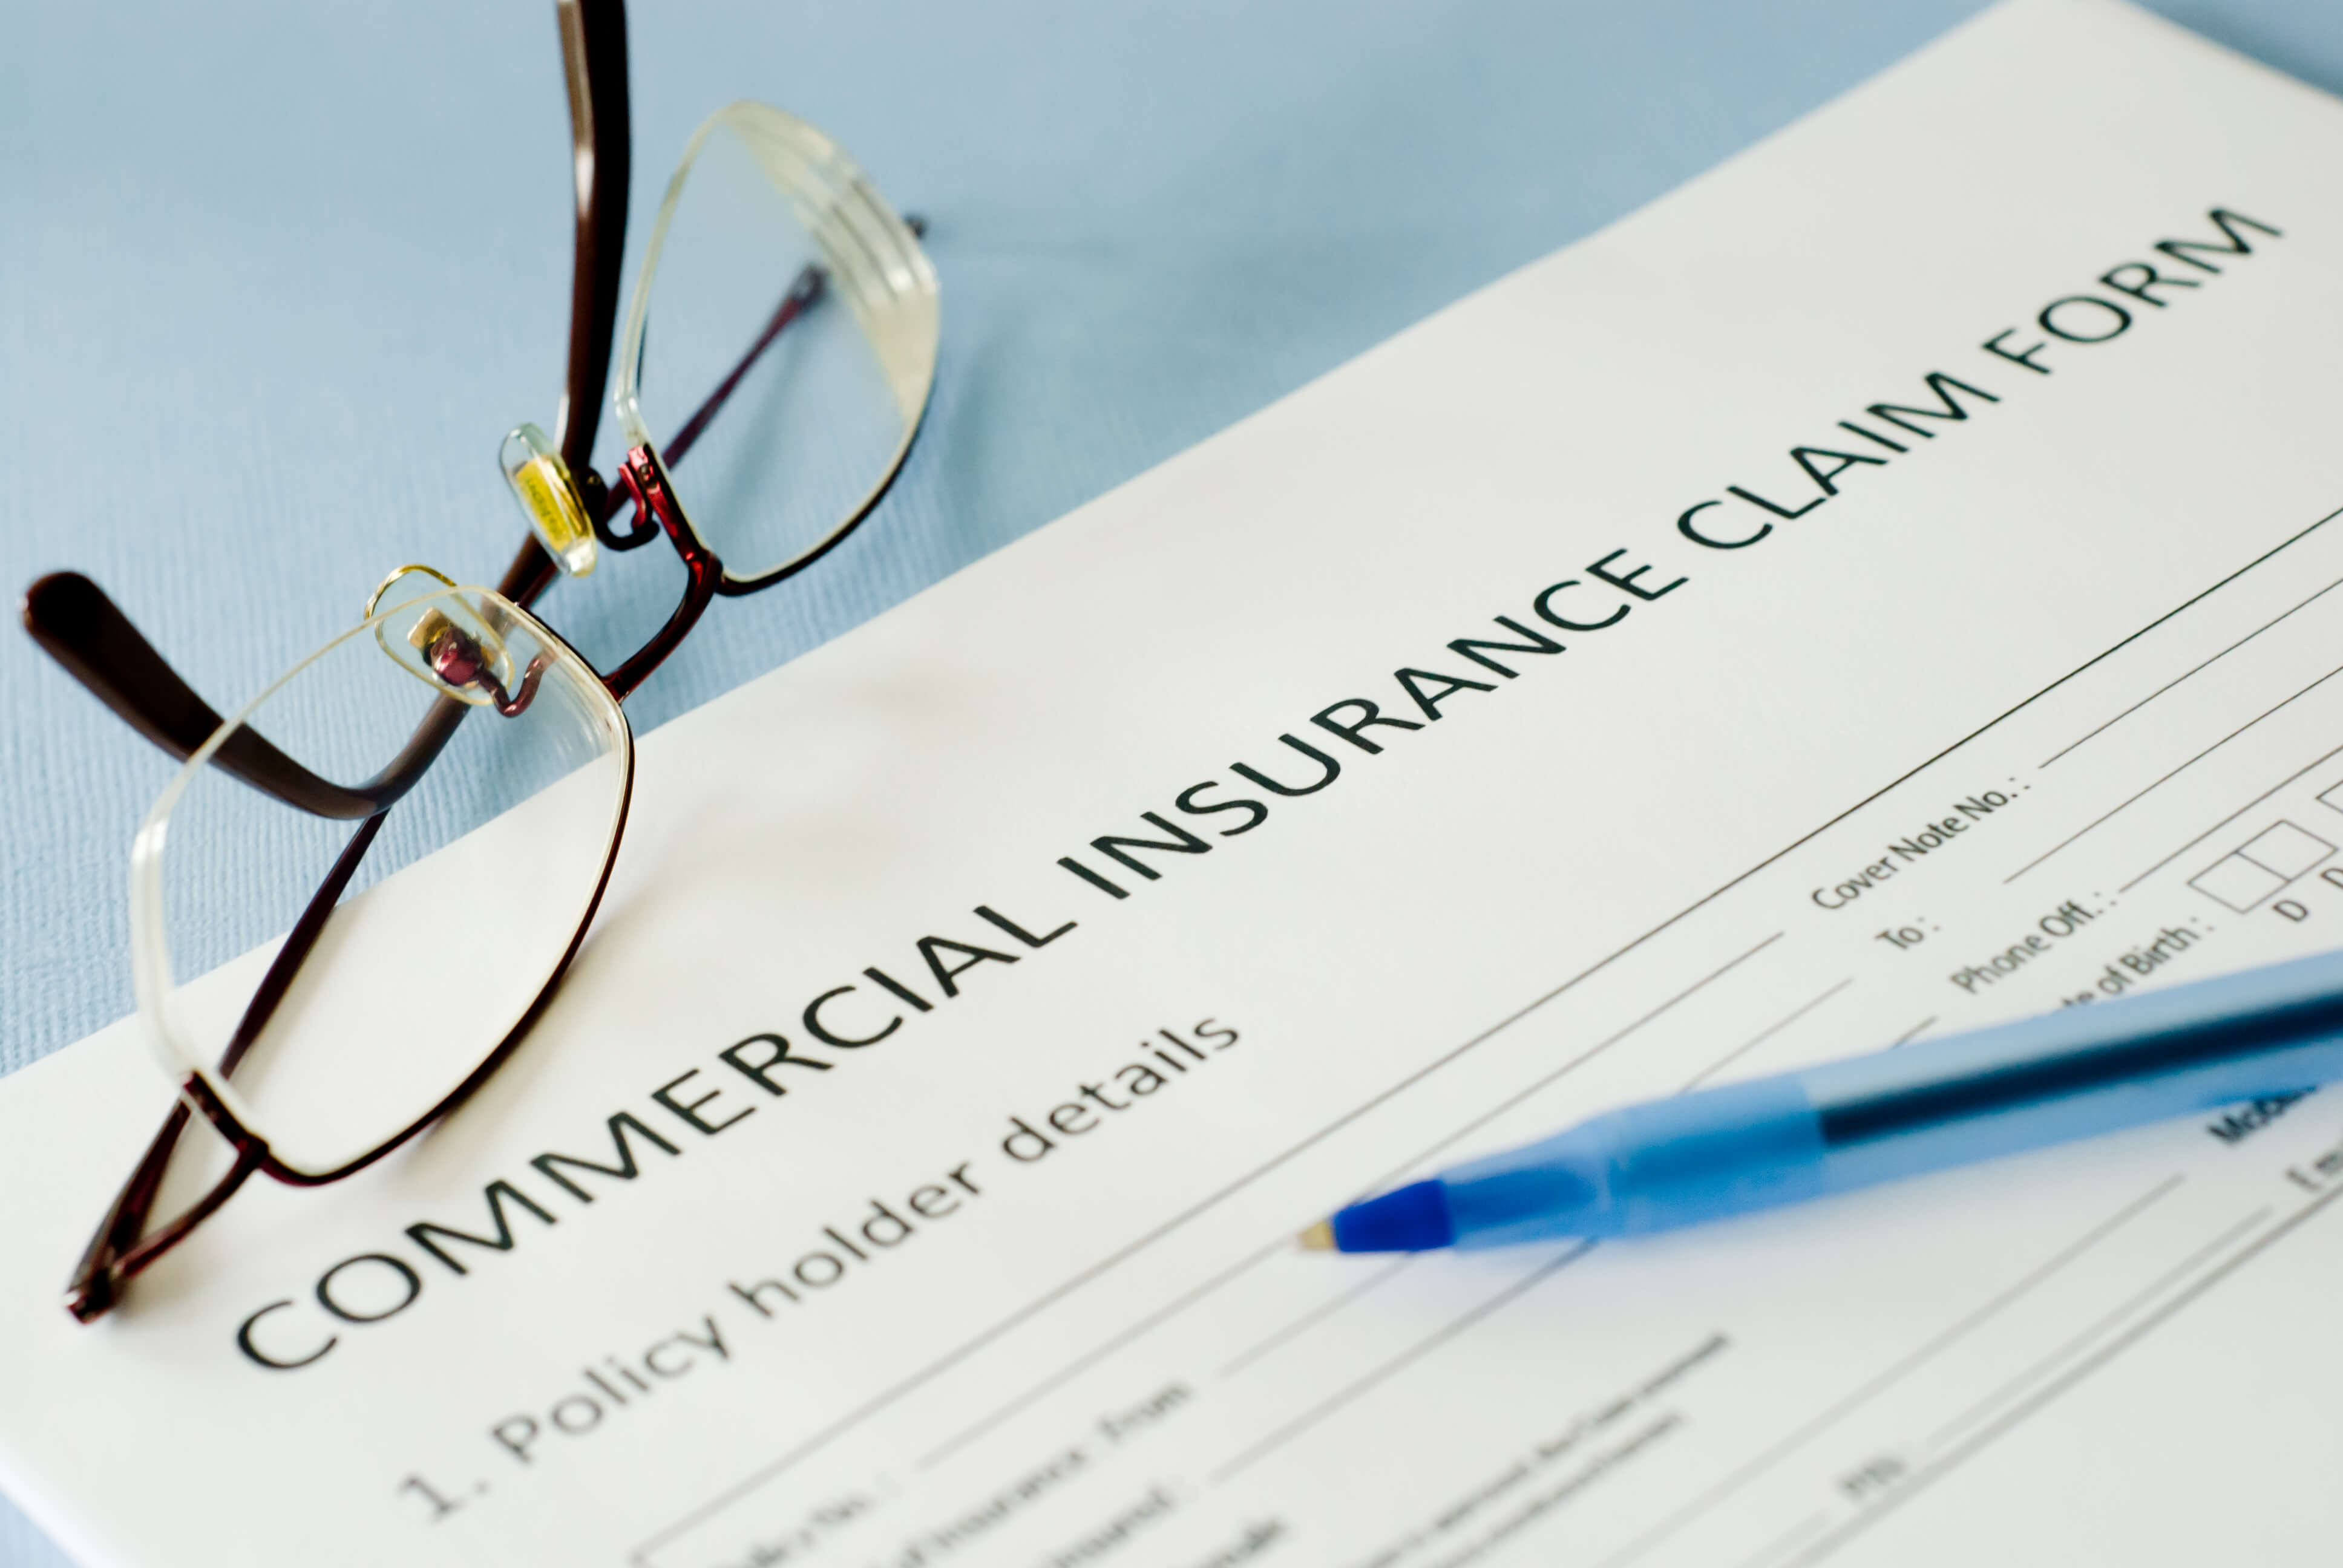 commercial insurance coverage,